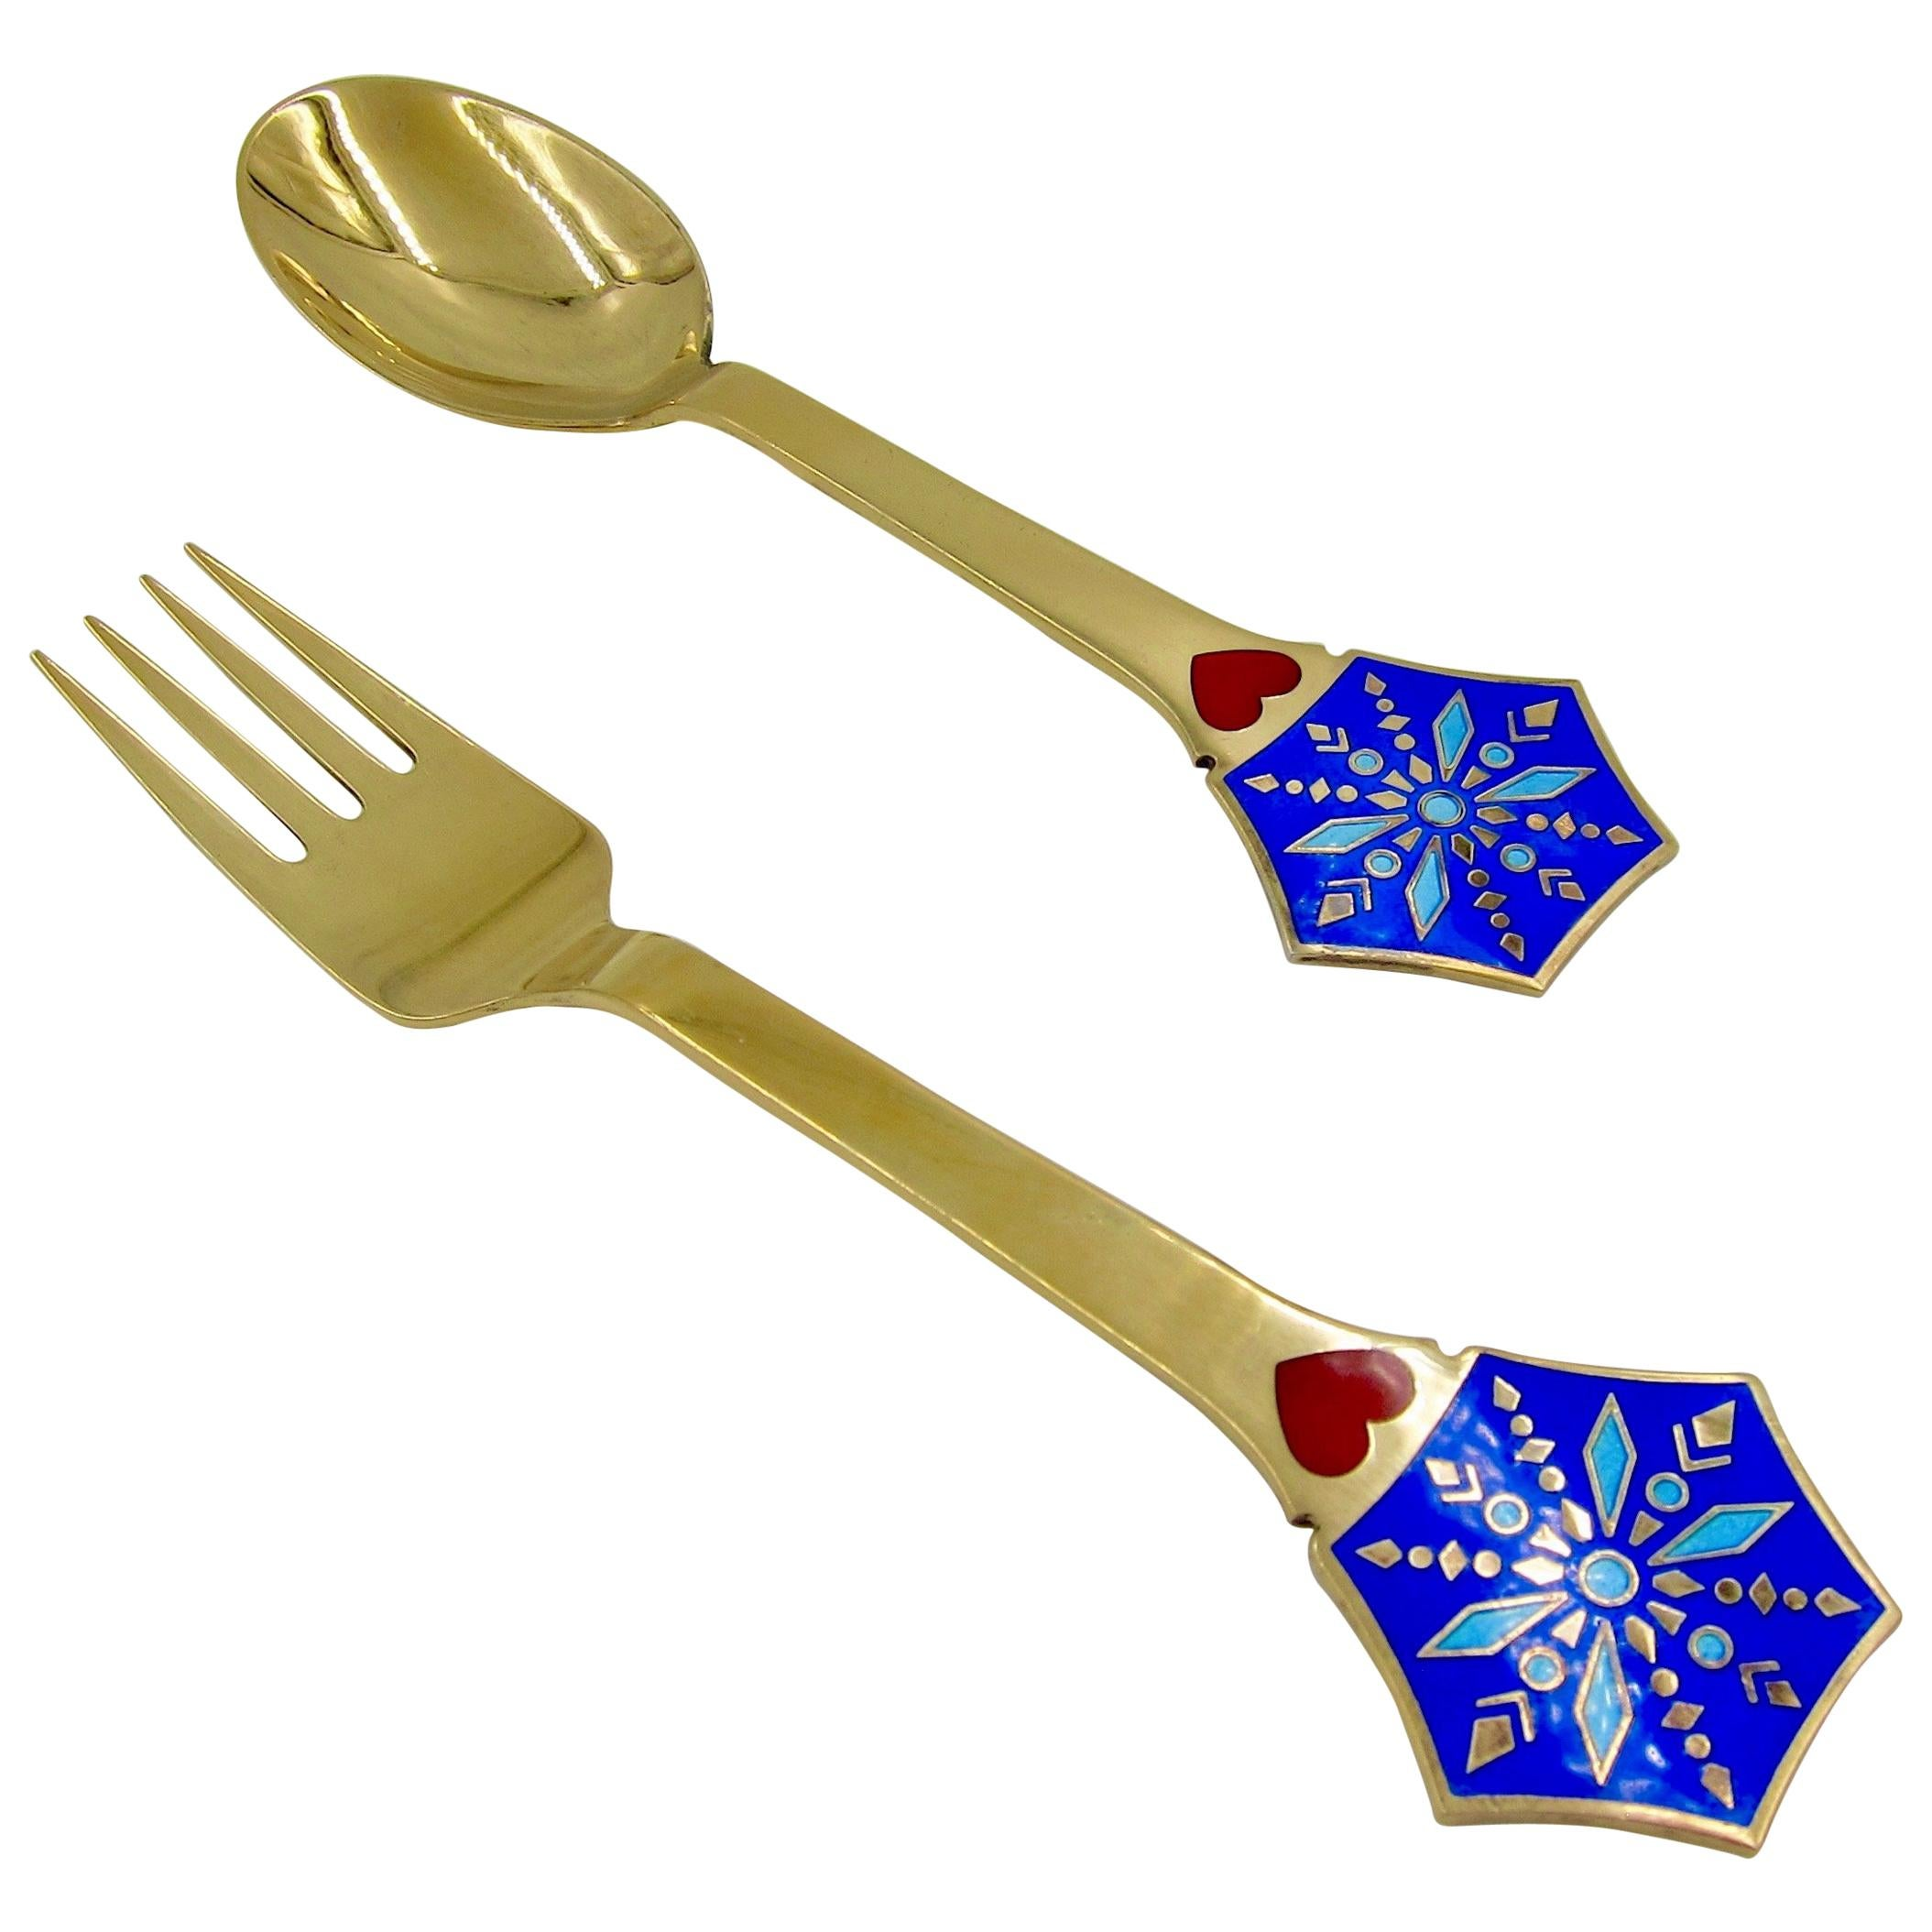 1976 Anton Michelsen Gilded Silver and Enamel Christmas Fork and Spoon Set